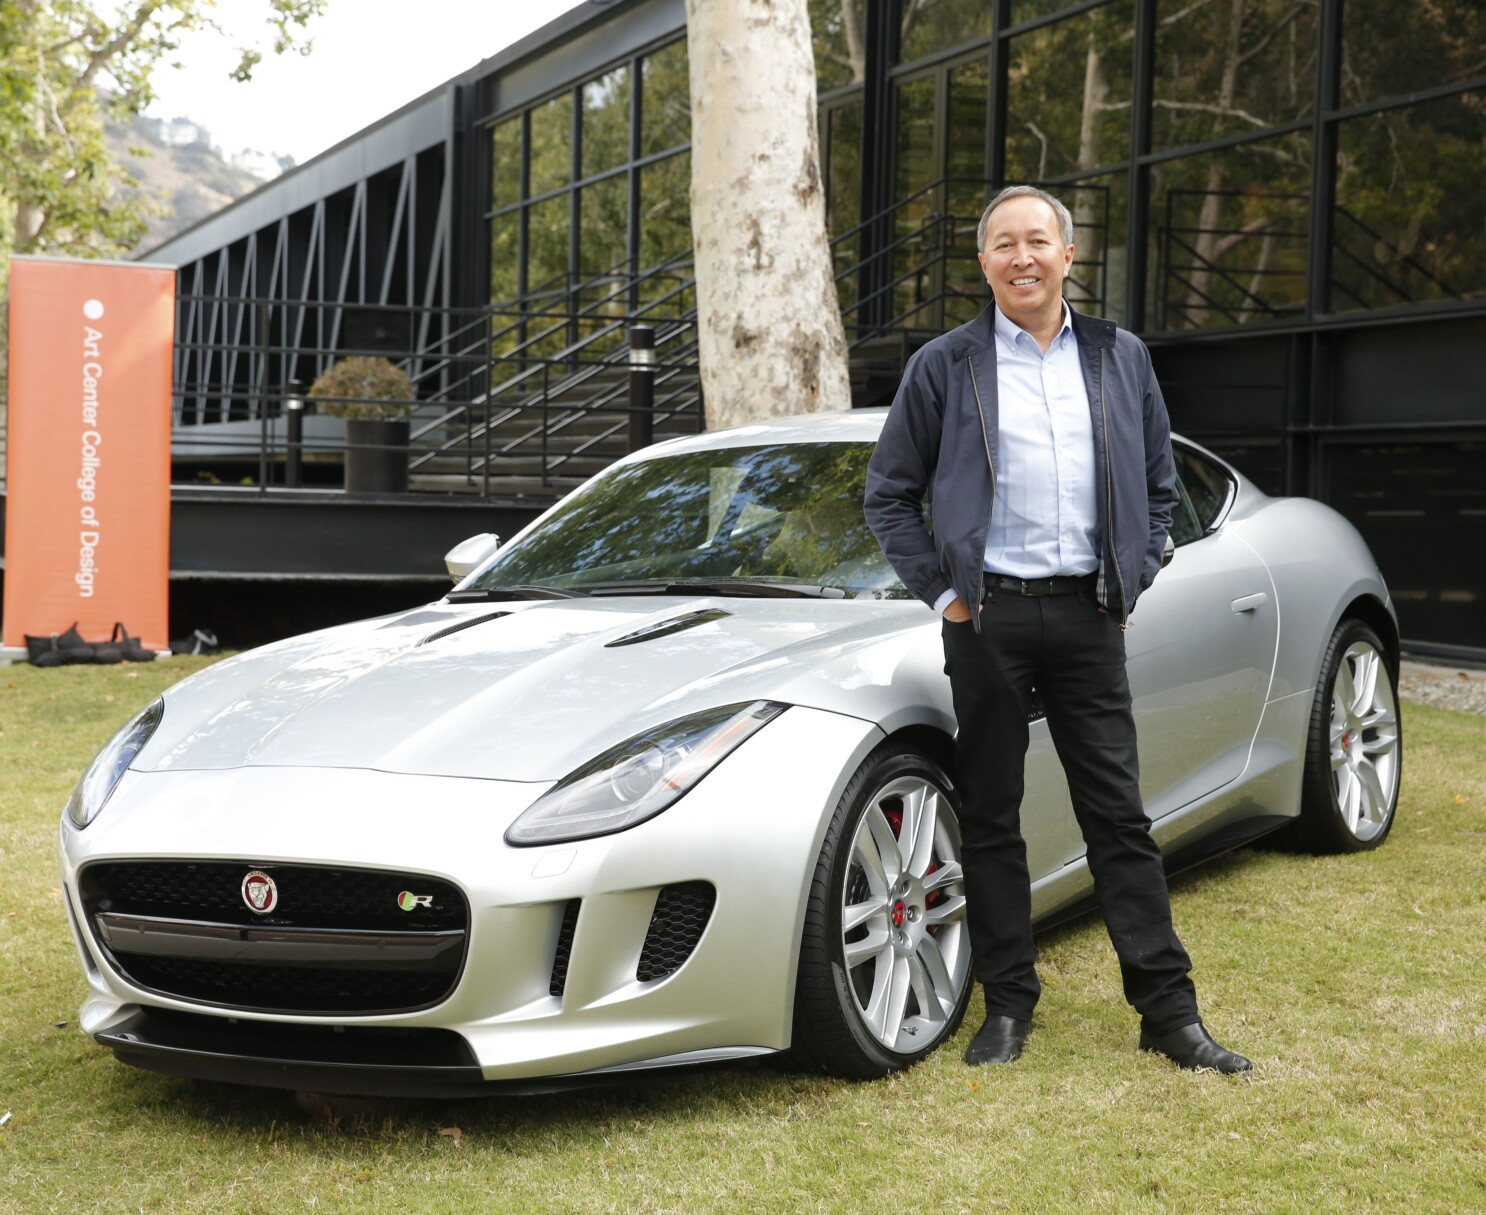 Introducing Julian Thomson Jaguar S New Director Of Design The San Diego Union Tribune